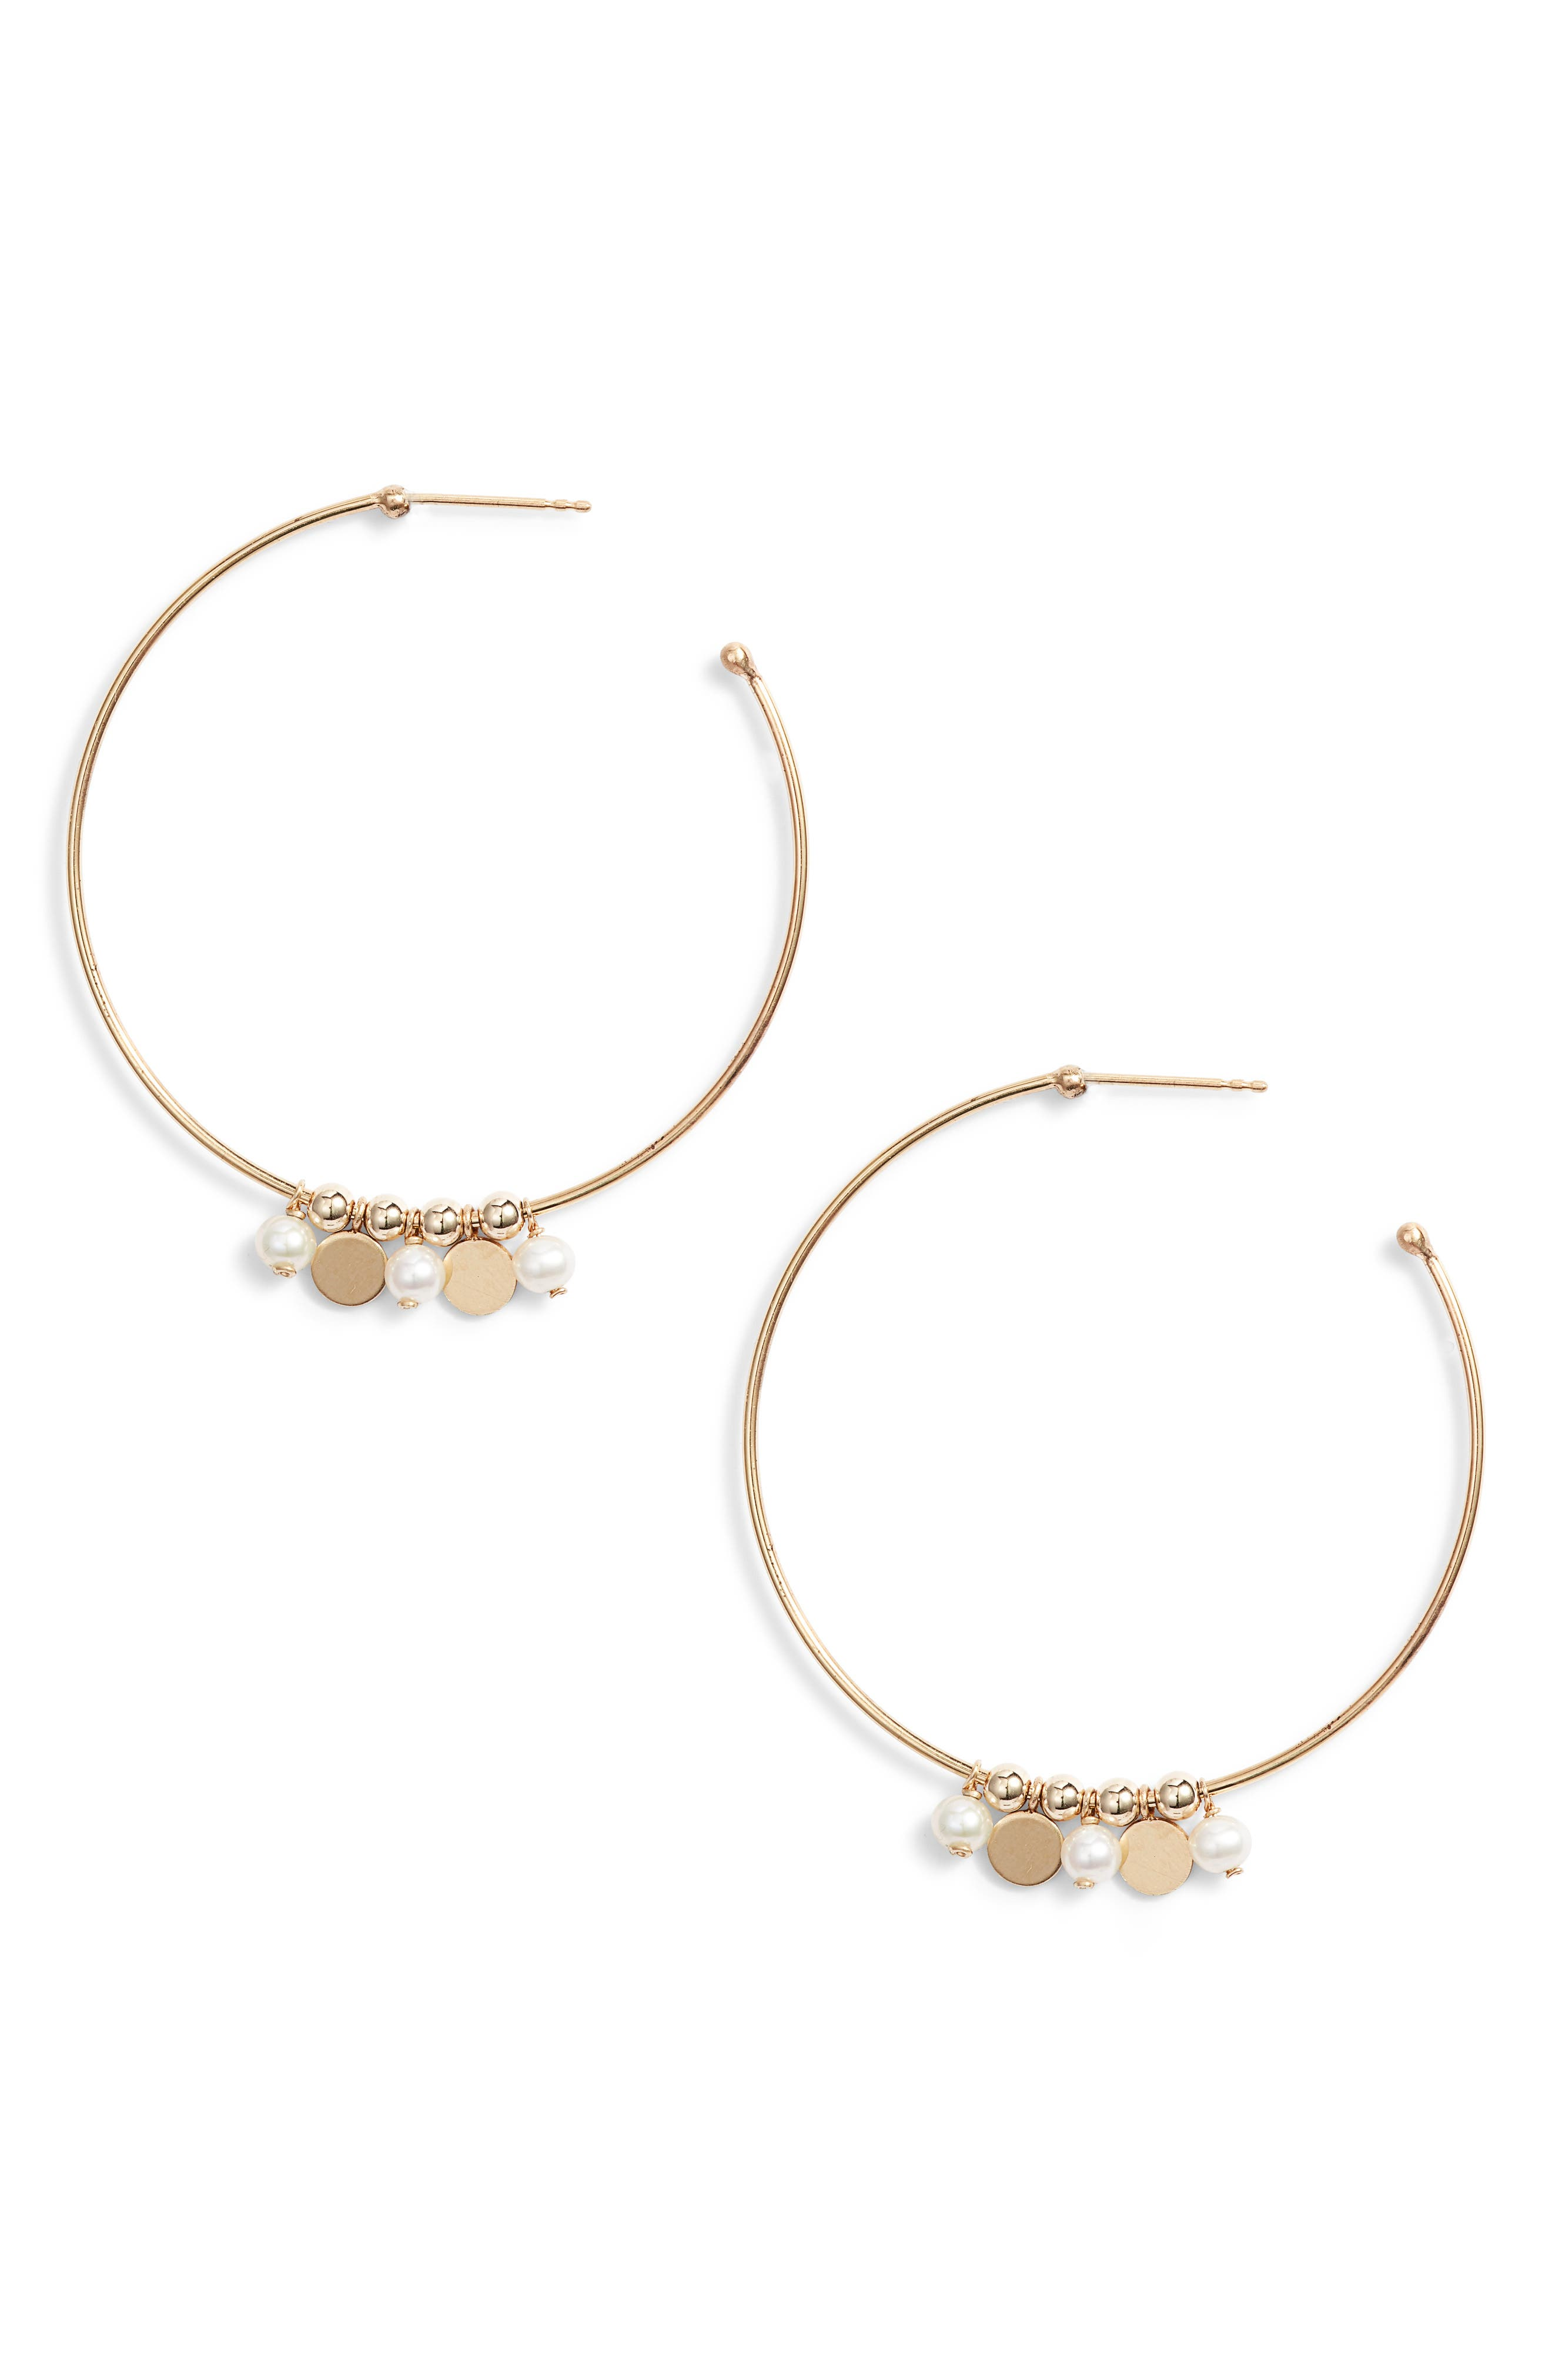 Confetti Pearl Gold Hoop Earrings,                             Main thumbnail 1, color,                             YELLOW GOLD/ WHITE PEARL